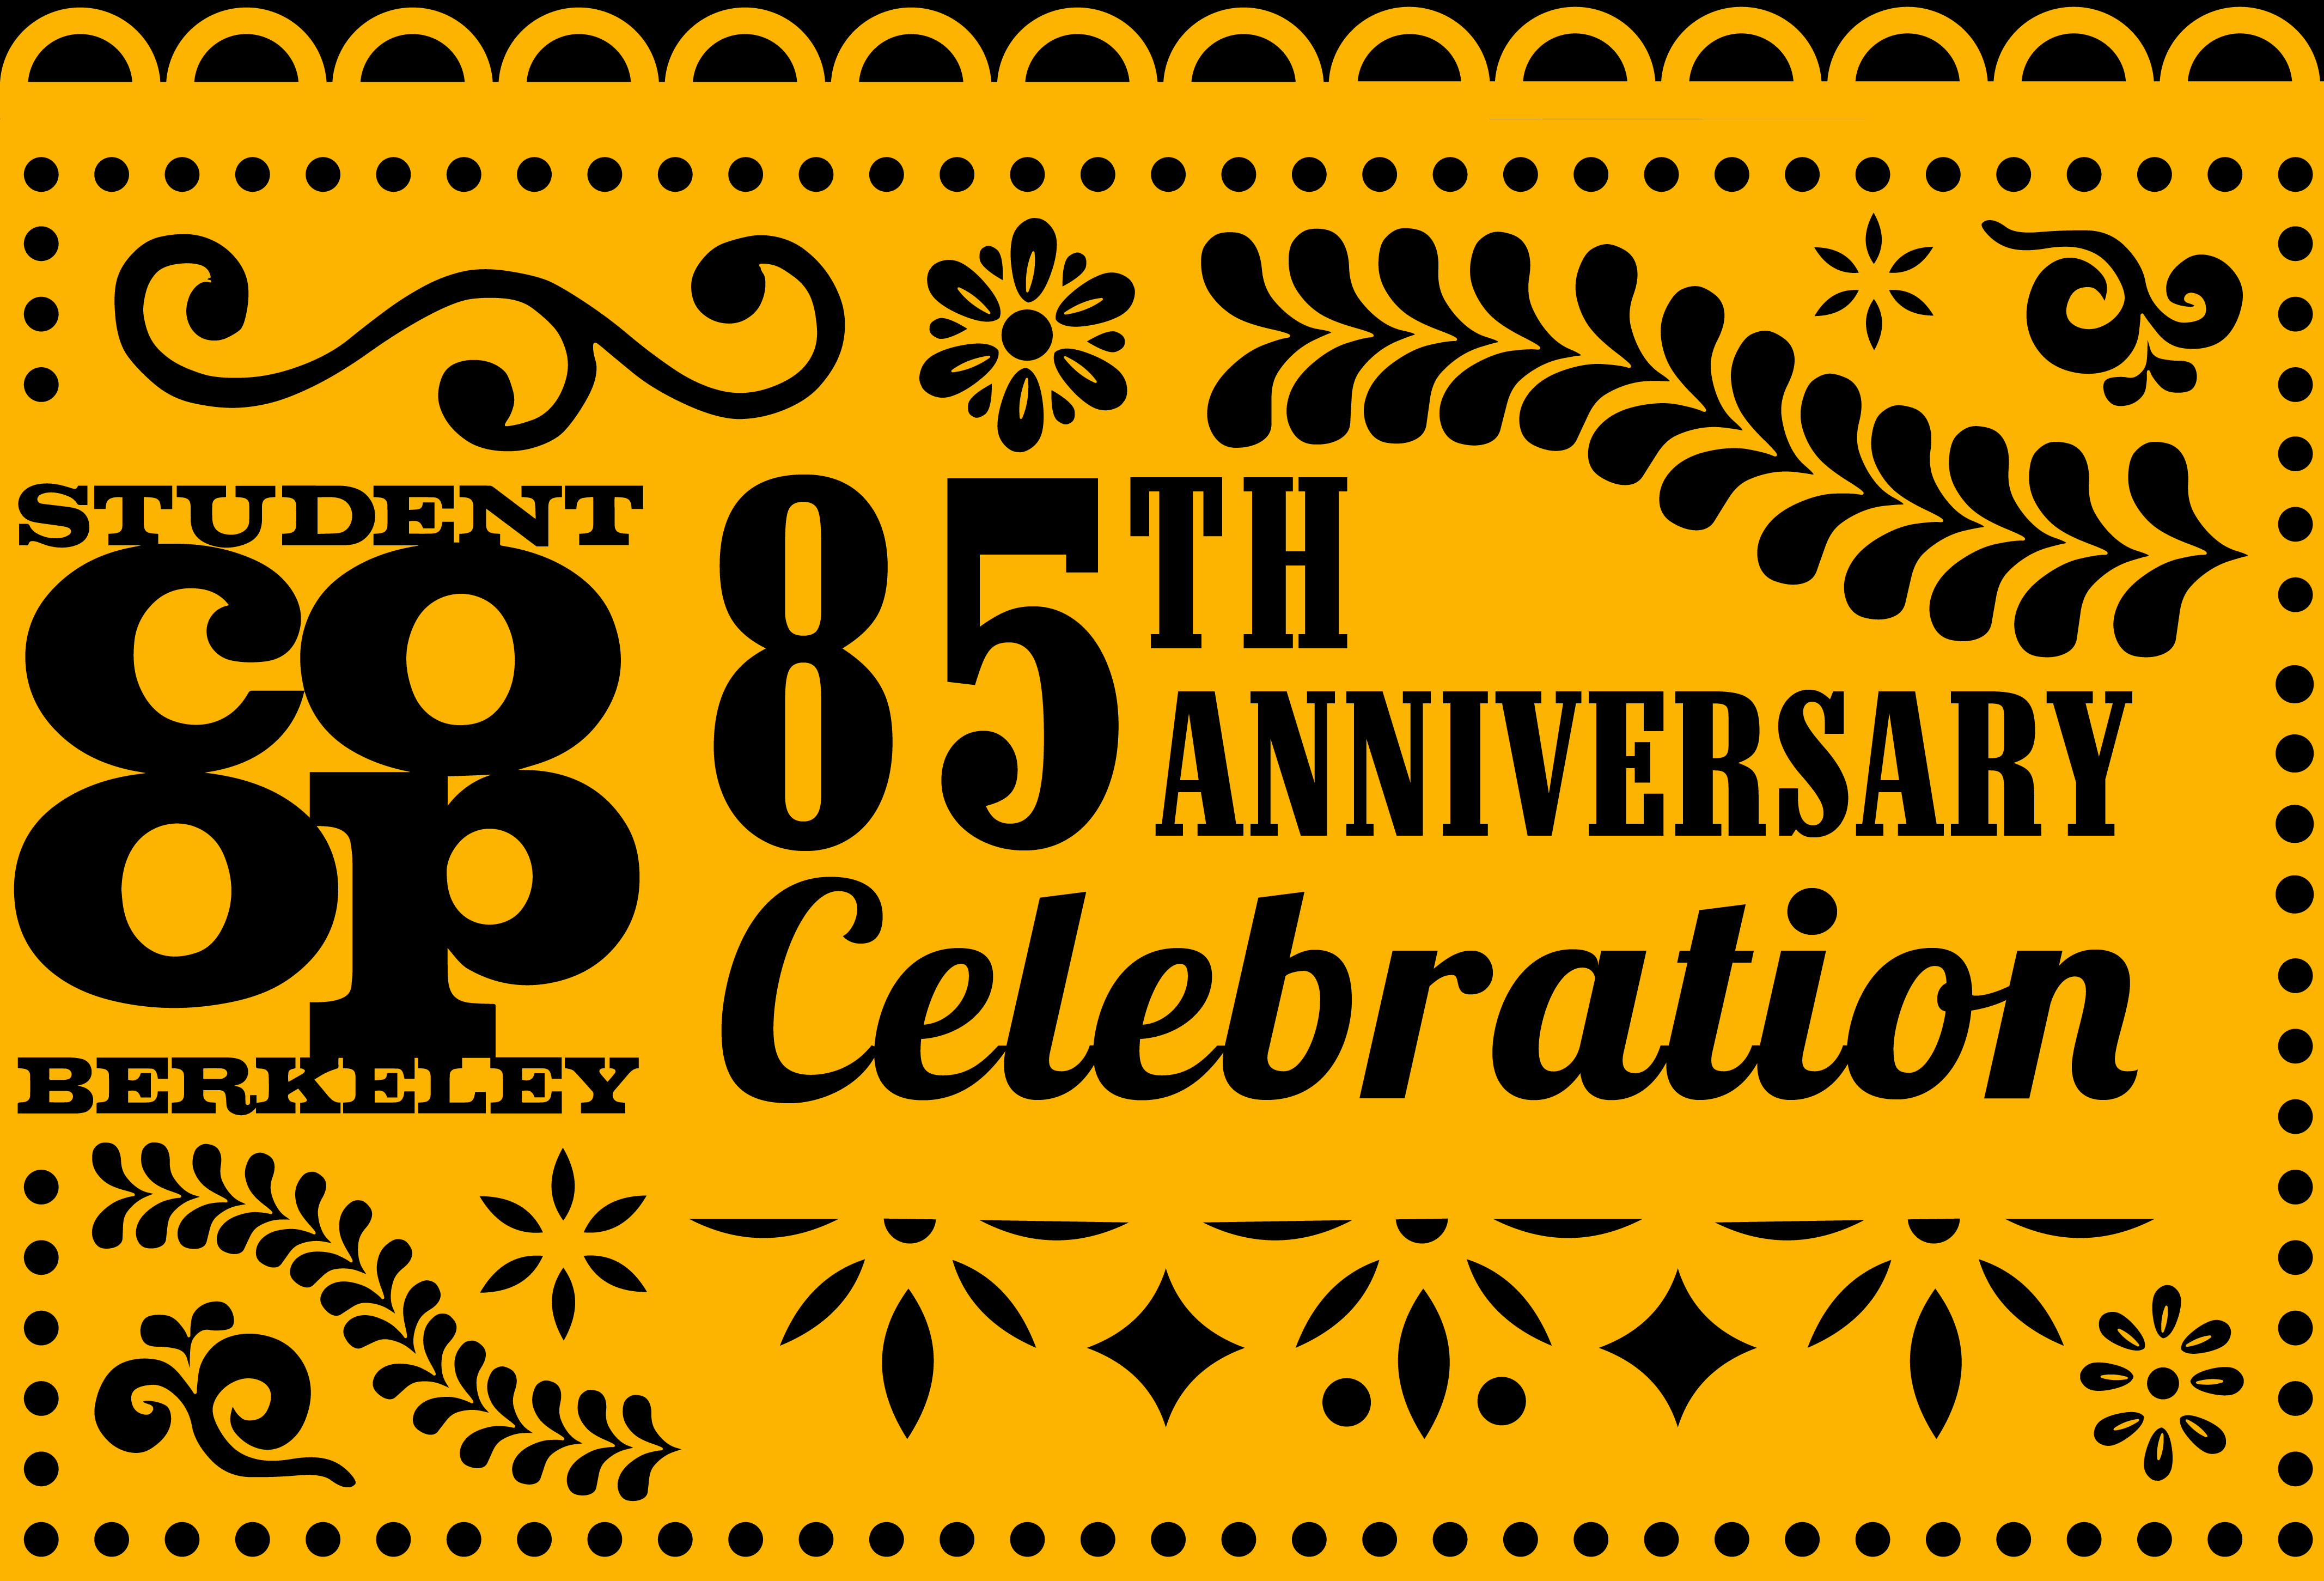 BSC 85th Anniversary Celebration!